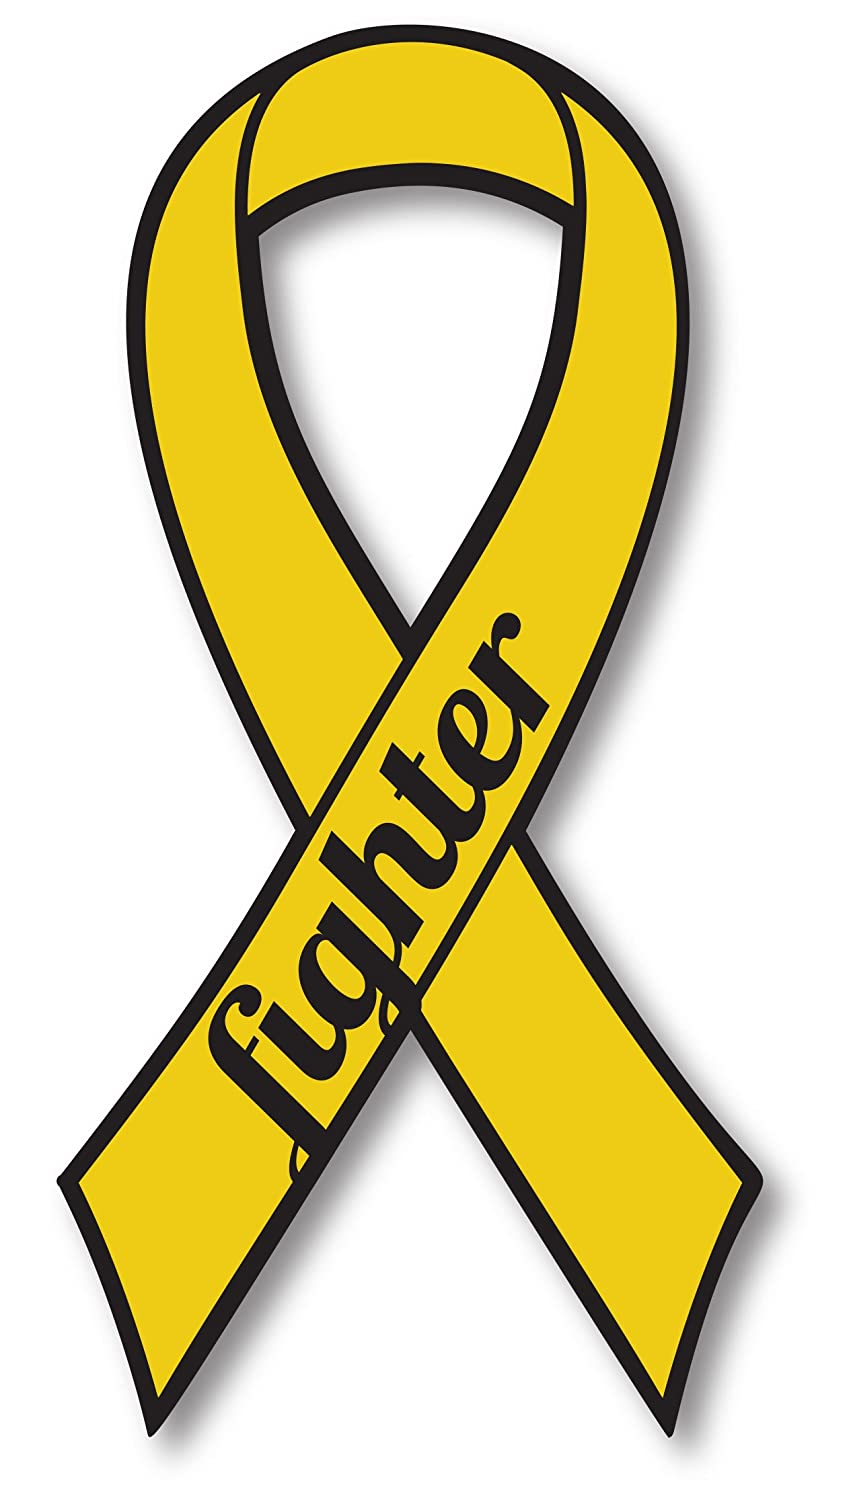 Gold Childhood Cancer Fighter Ribbon Car Magnet Decal Heavy Duty Waterproof Magnet Me Up R-28